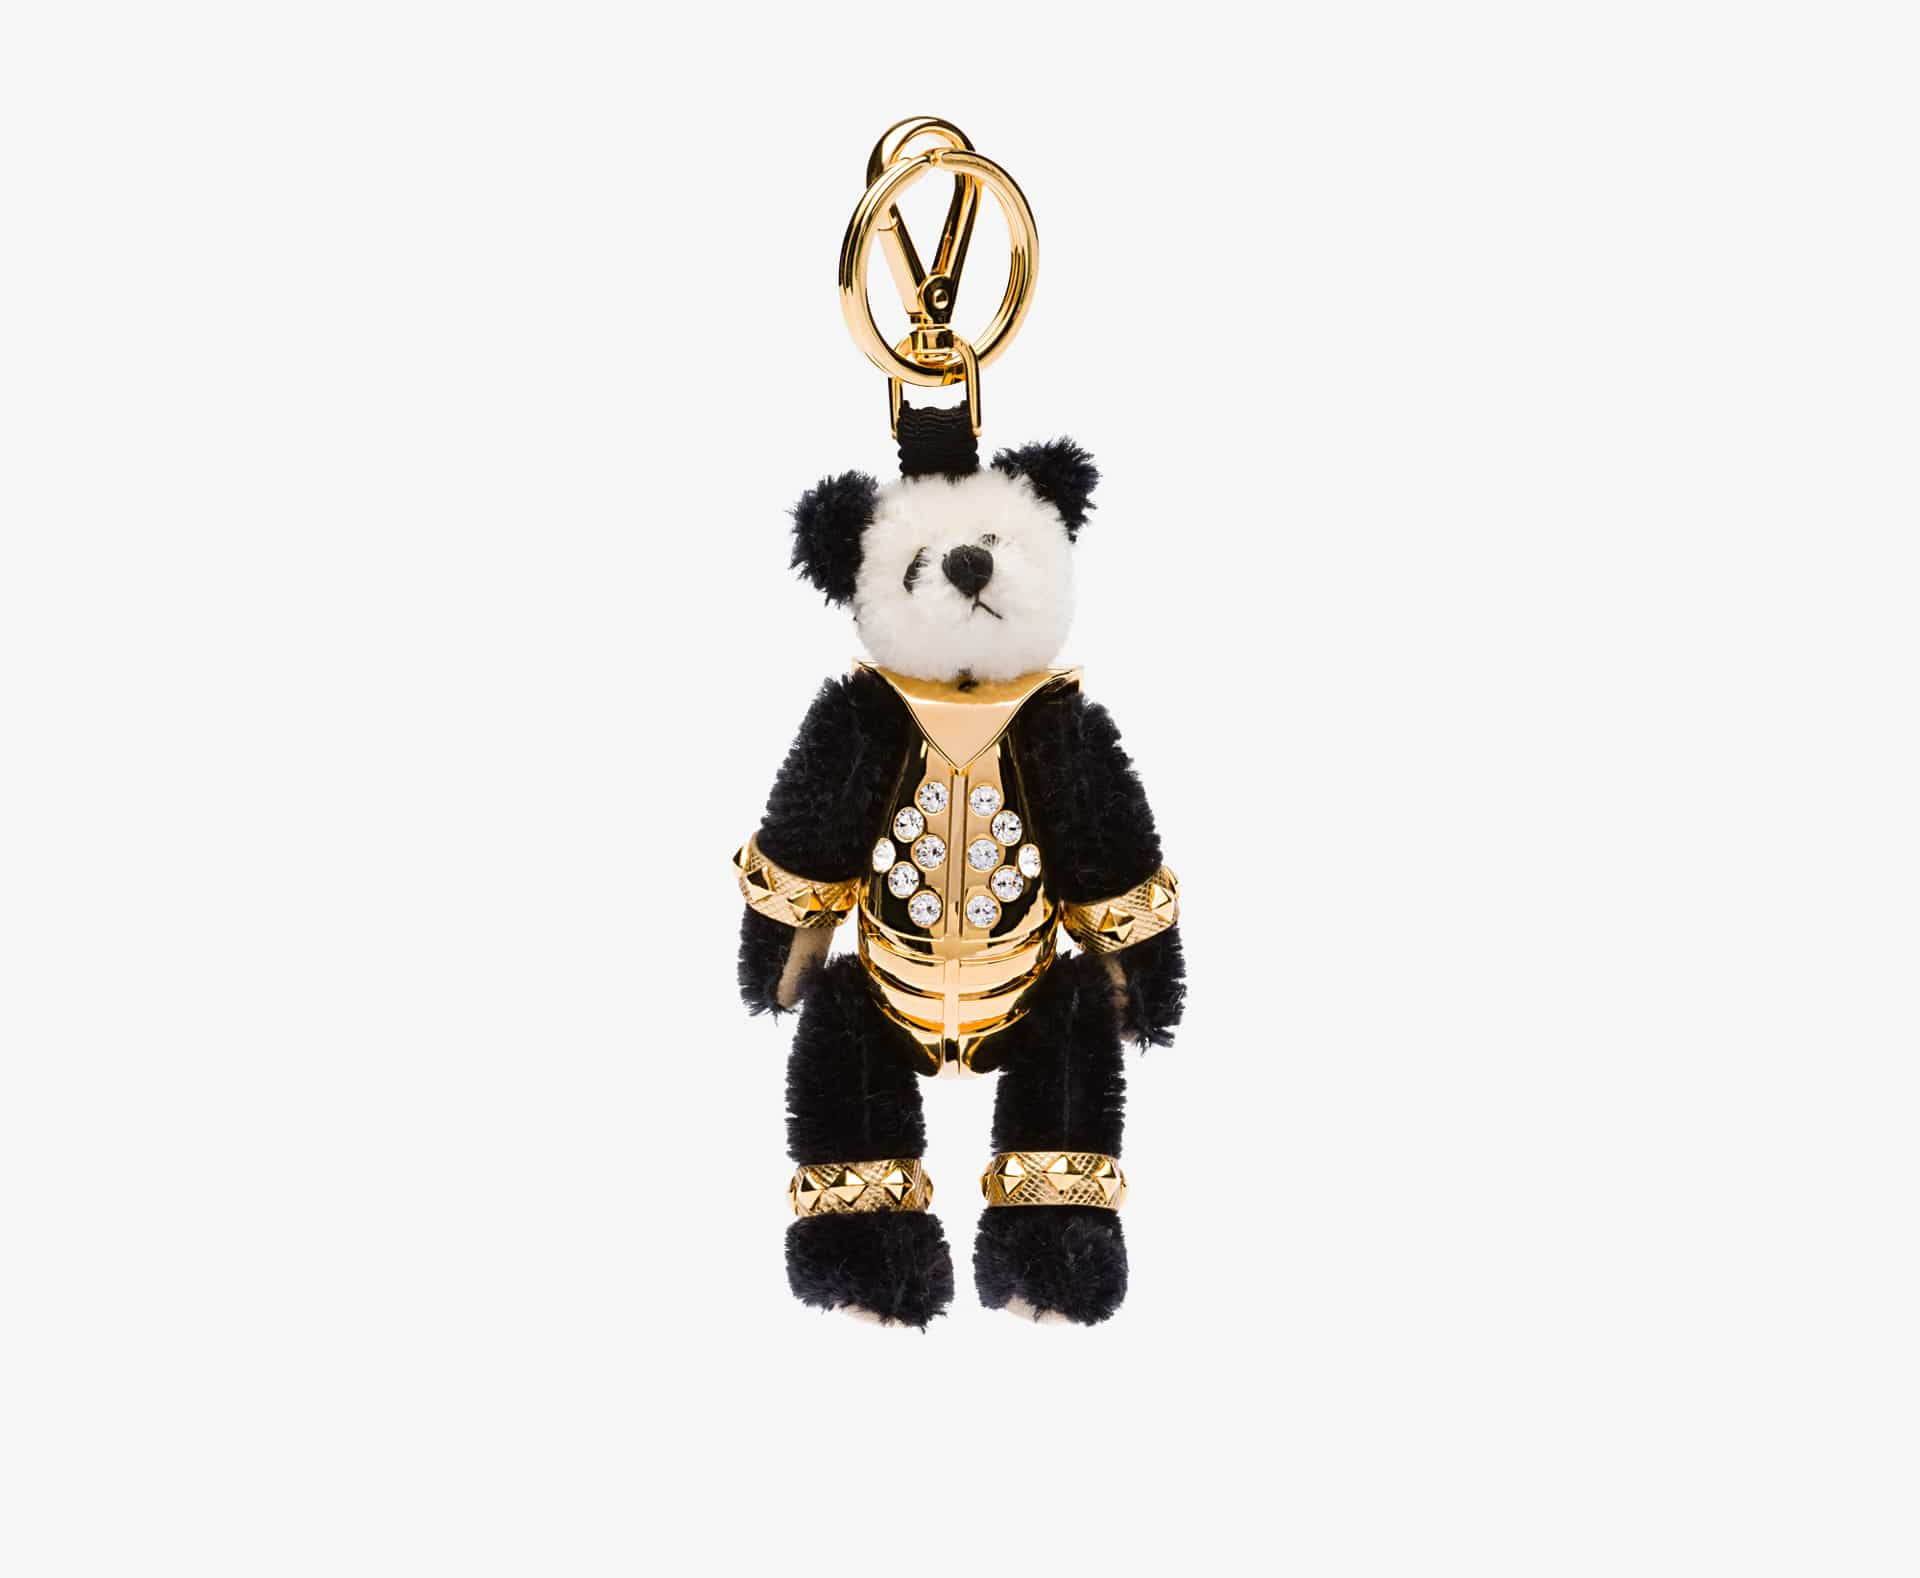 Prada Trick Bear Charms for Holiday 2014 Collection | Spotted Fashion